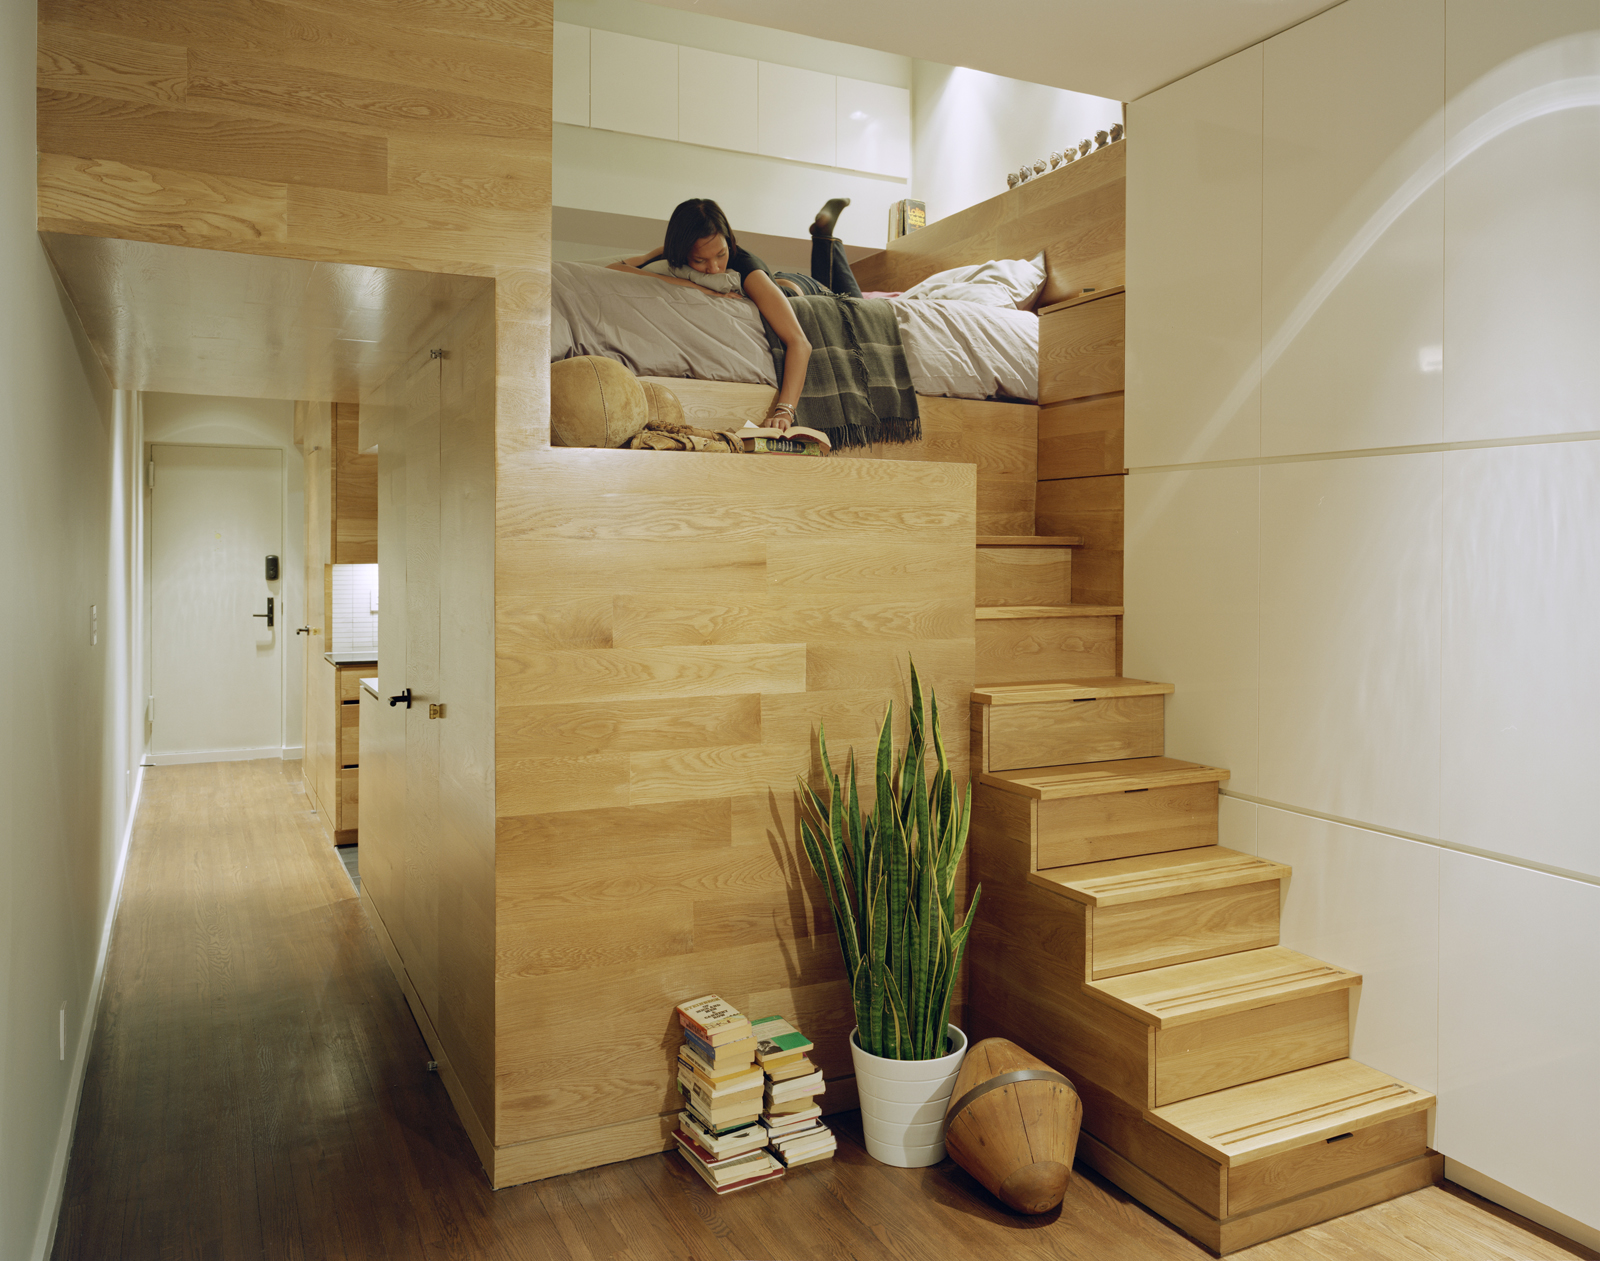 Smallest House In The World 2012 12 homes around the world that will make your hdb flat look like a